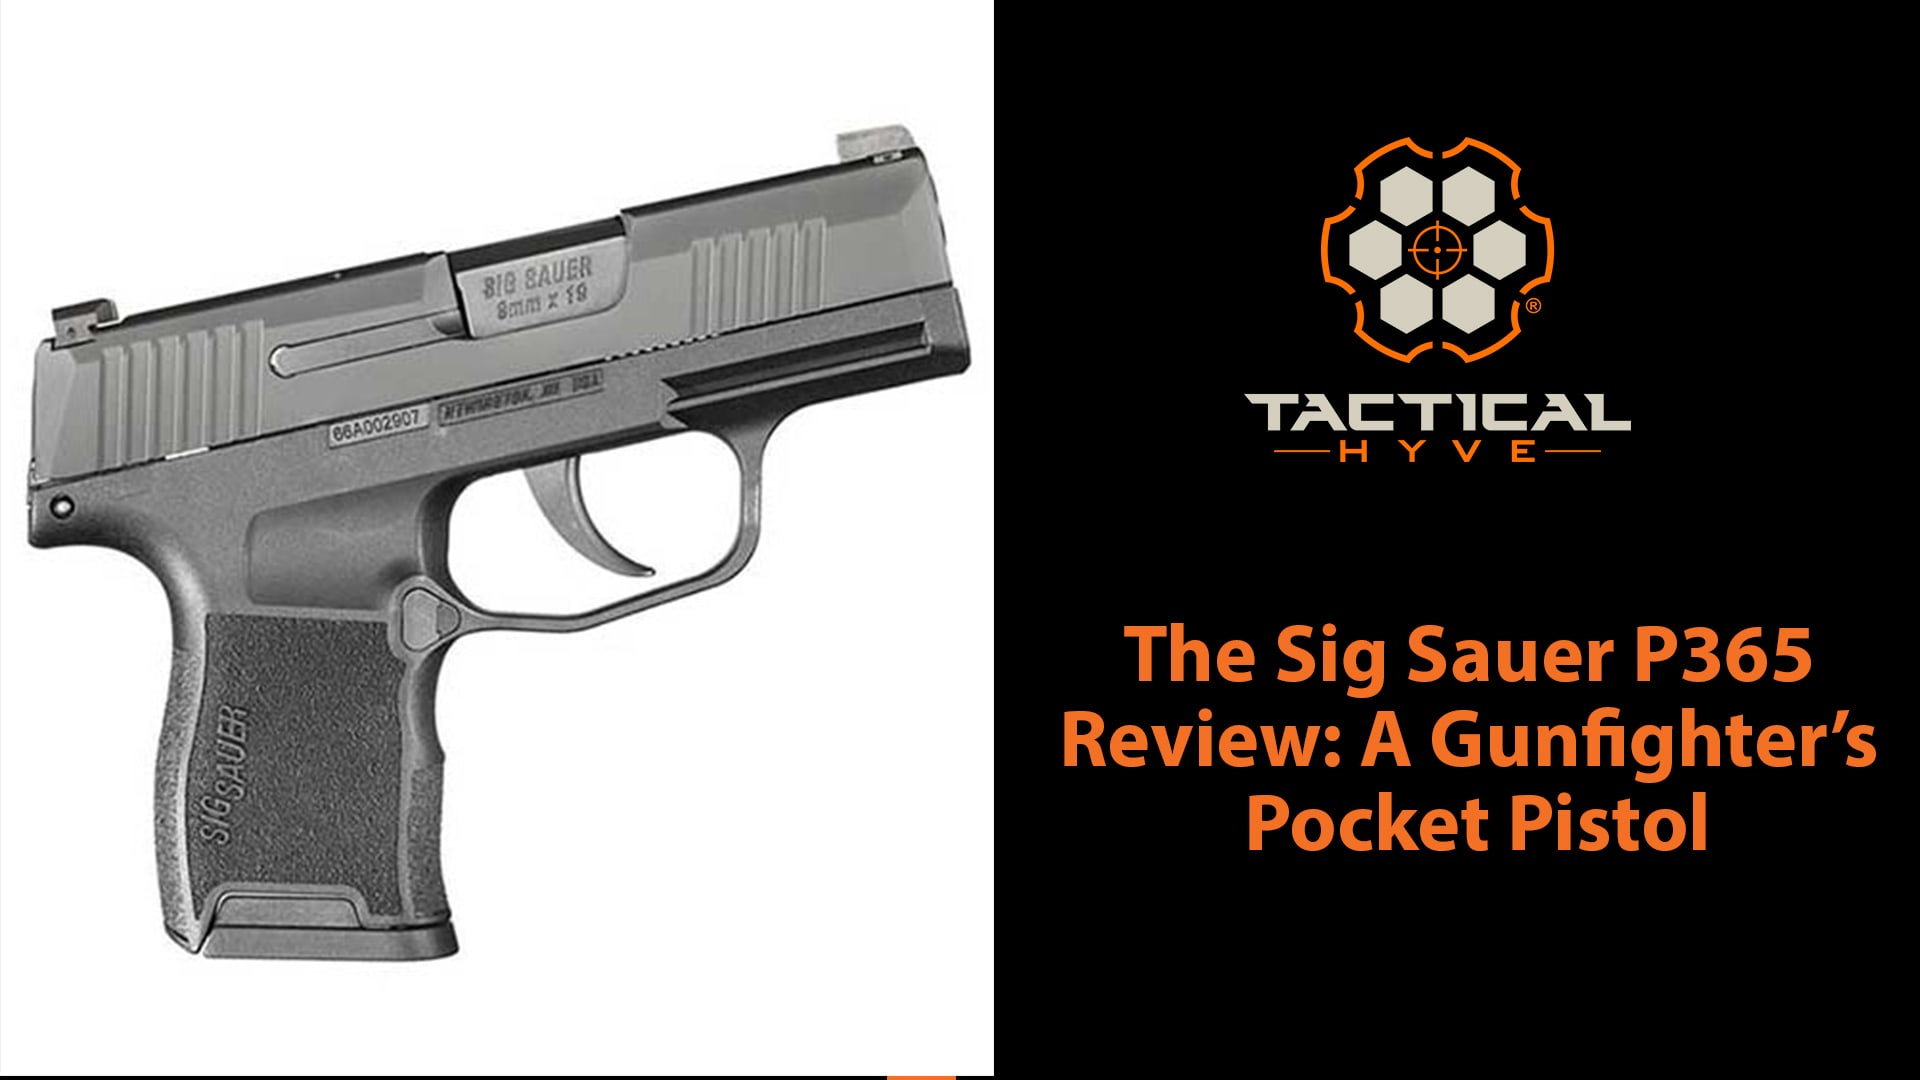 Sig P365 Review: A Gunfighter's Pocket Pistol - Tactical Hyve